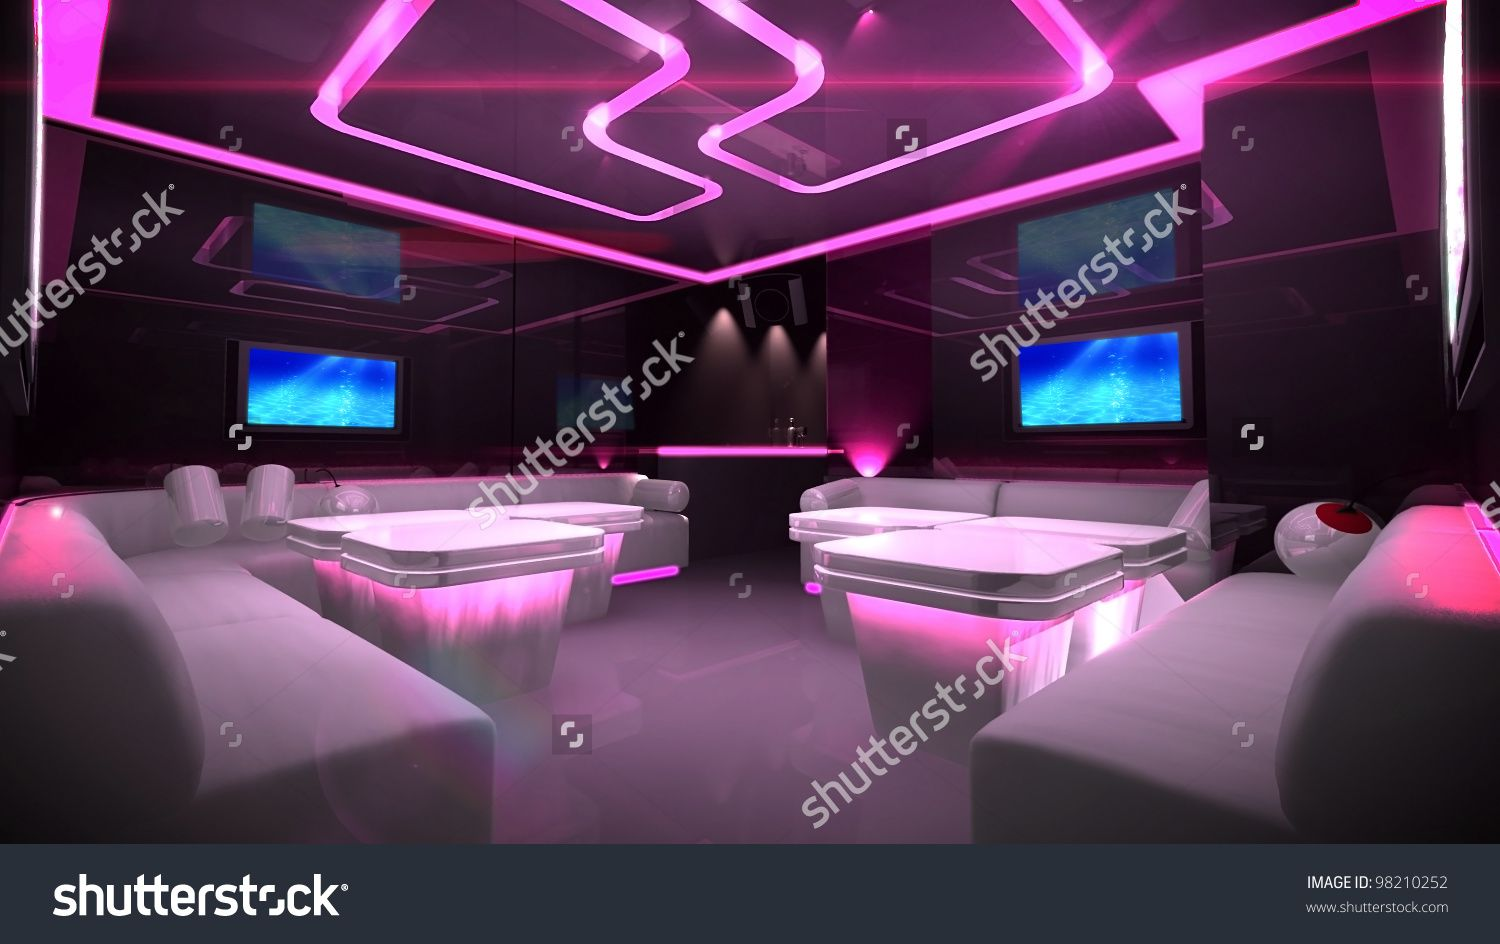 stock-photo-the-nightclub-interior-design-with-the-cyber-style ...